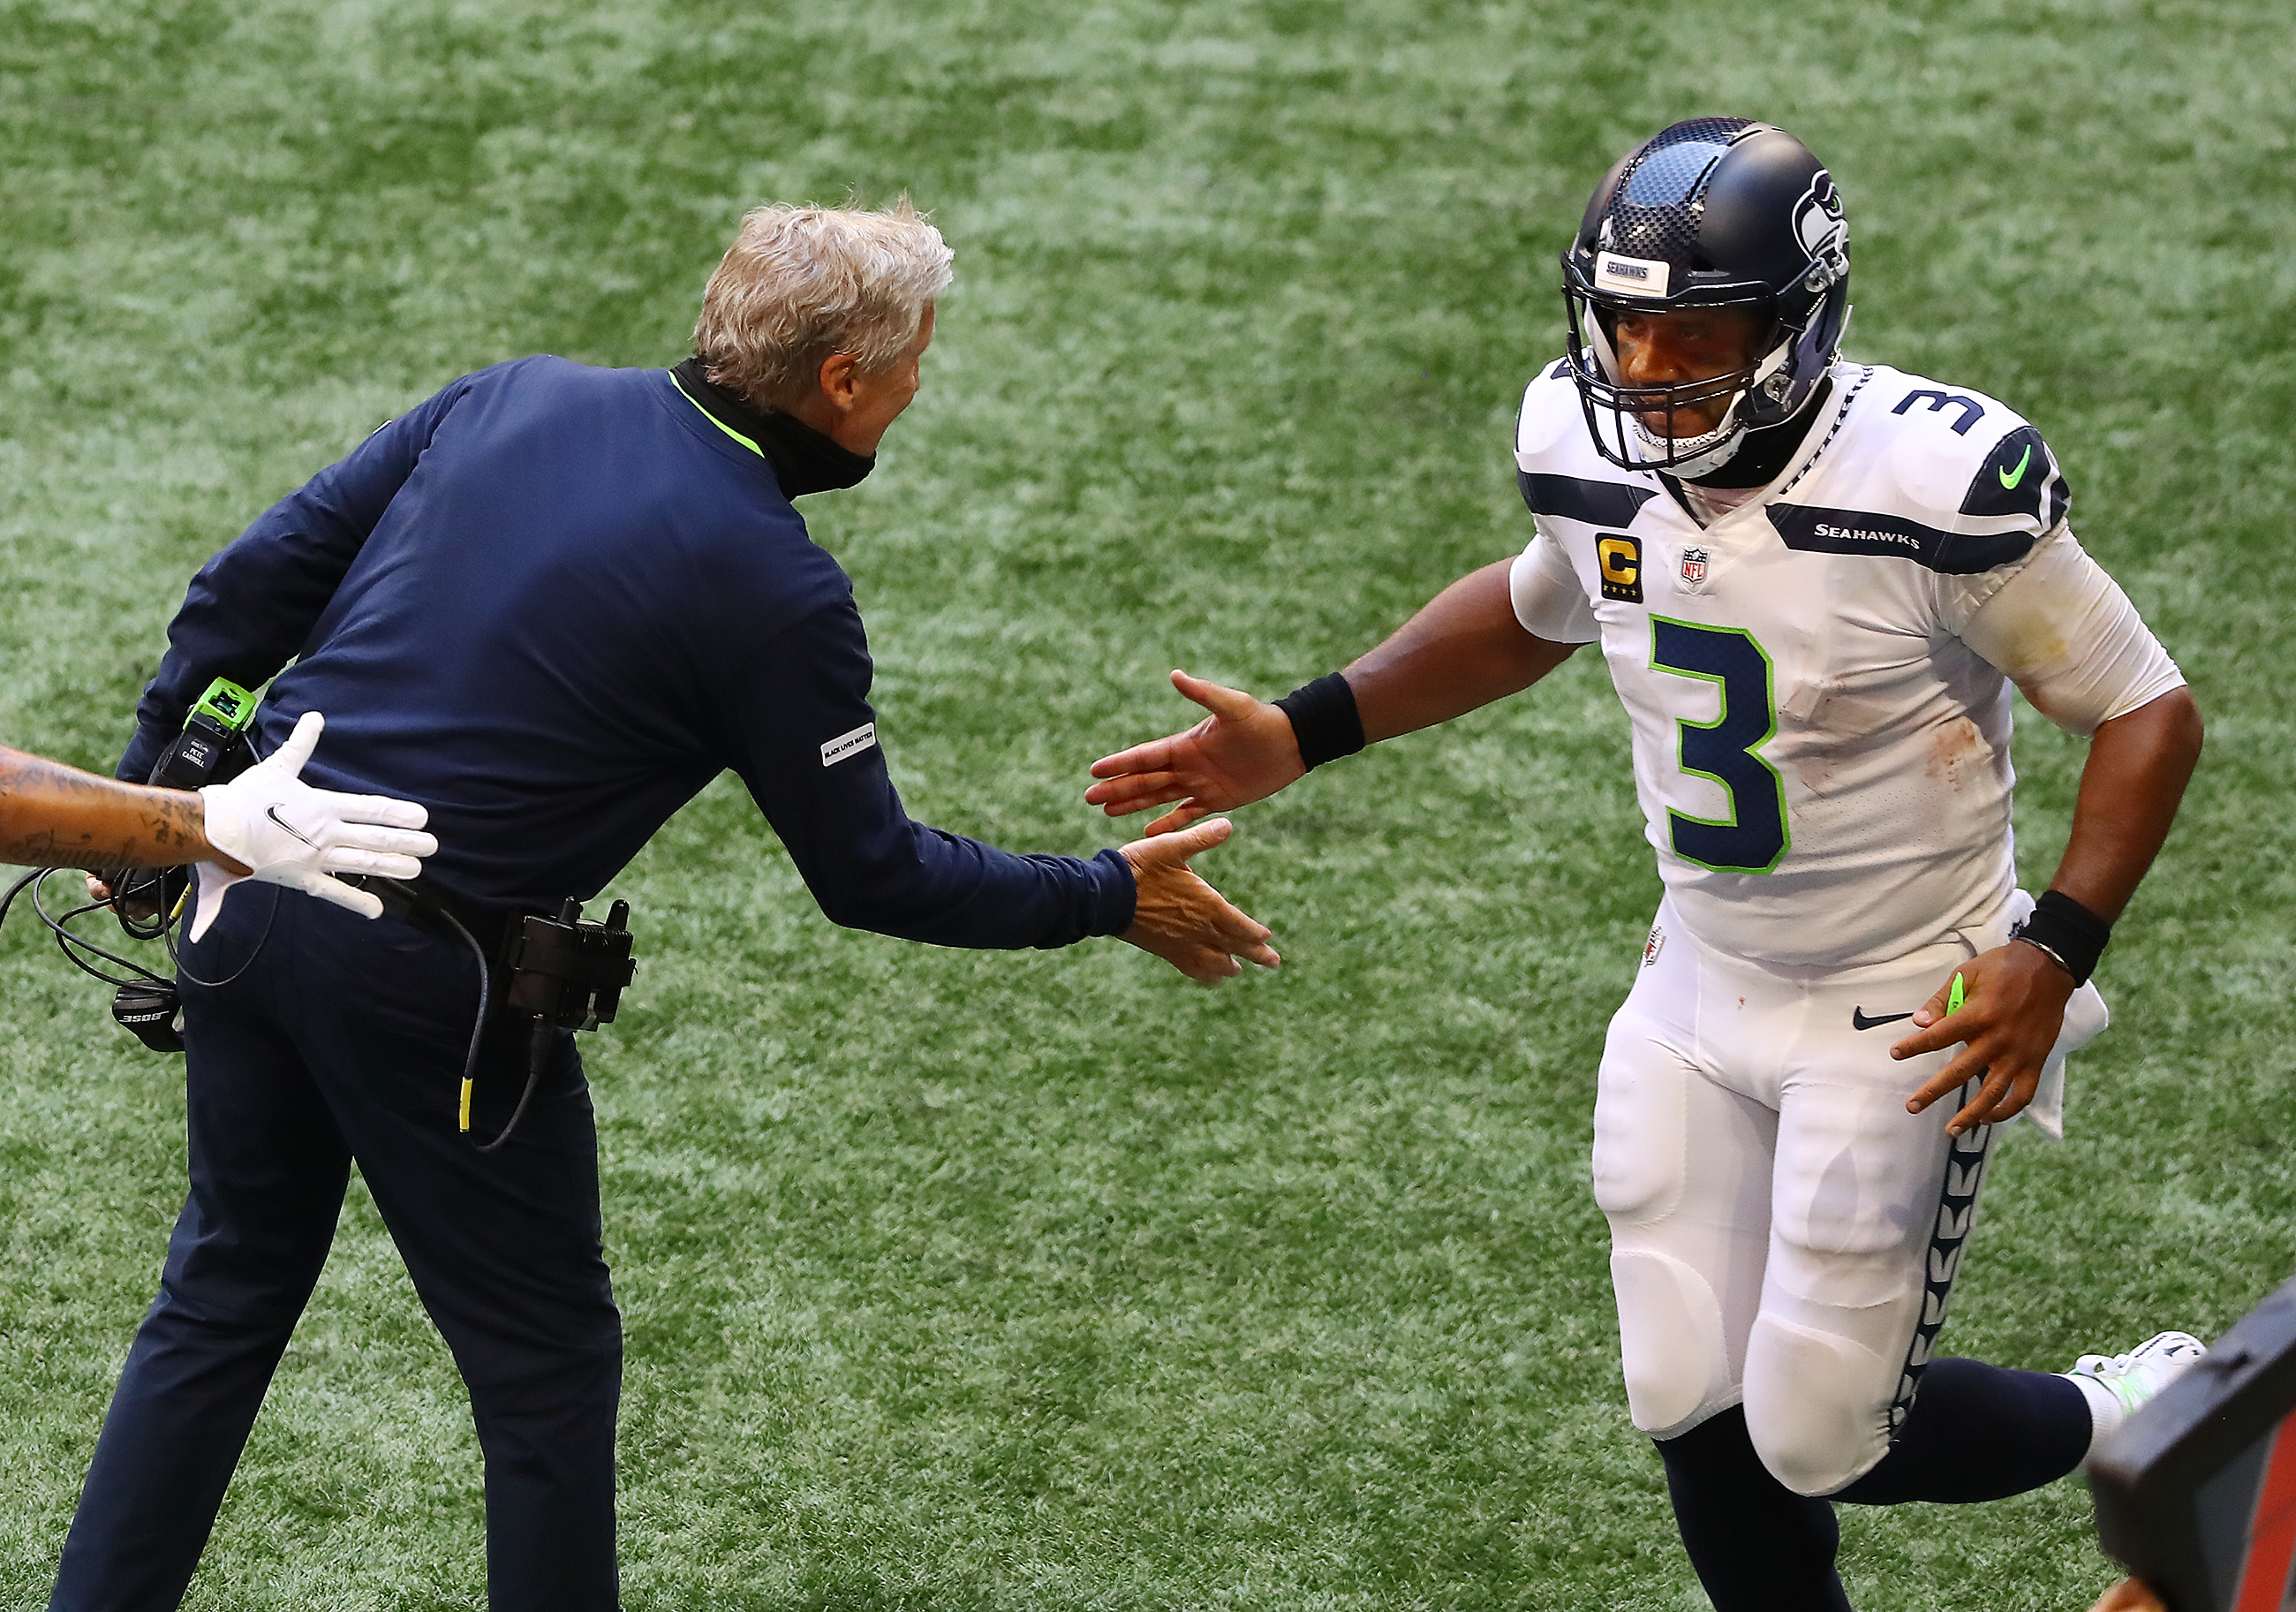 Nfl Warns Coaches About Face Coverings Or Risk Season